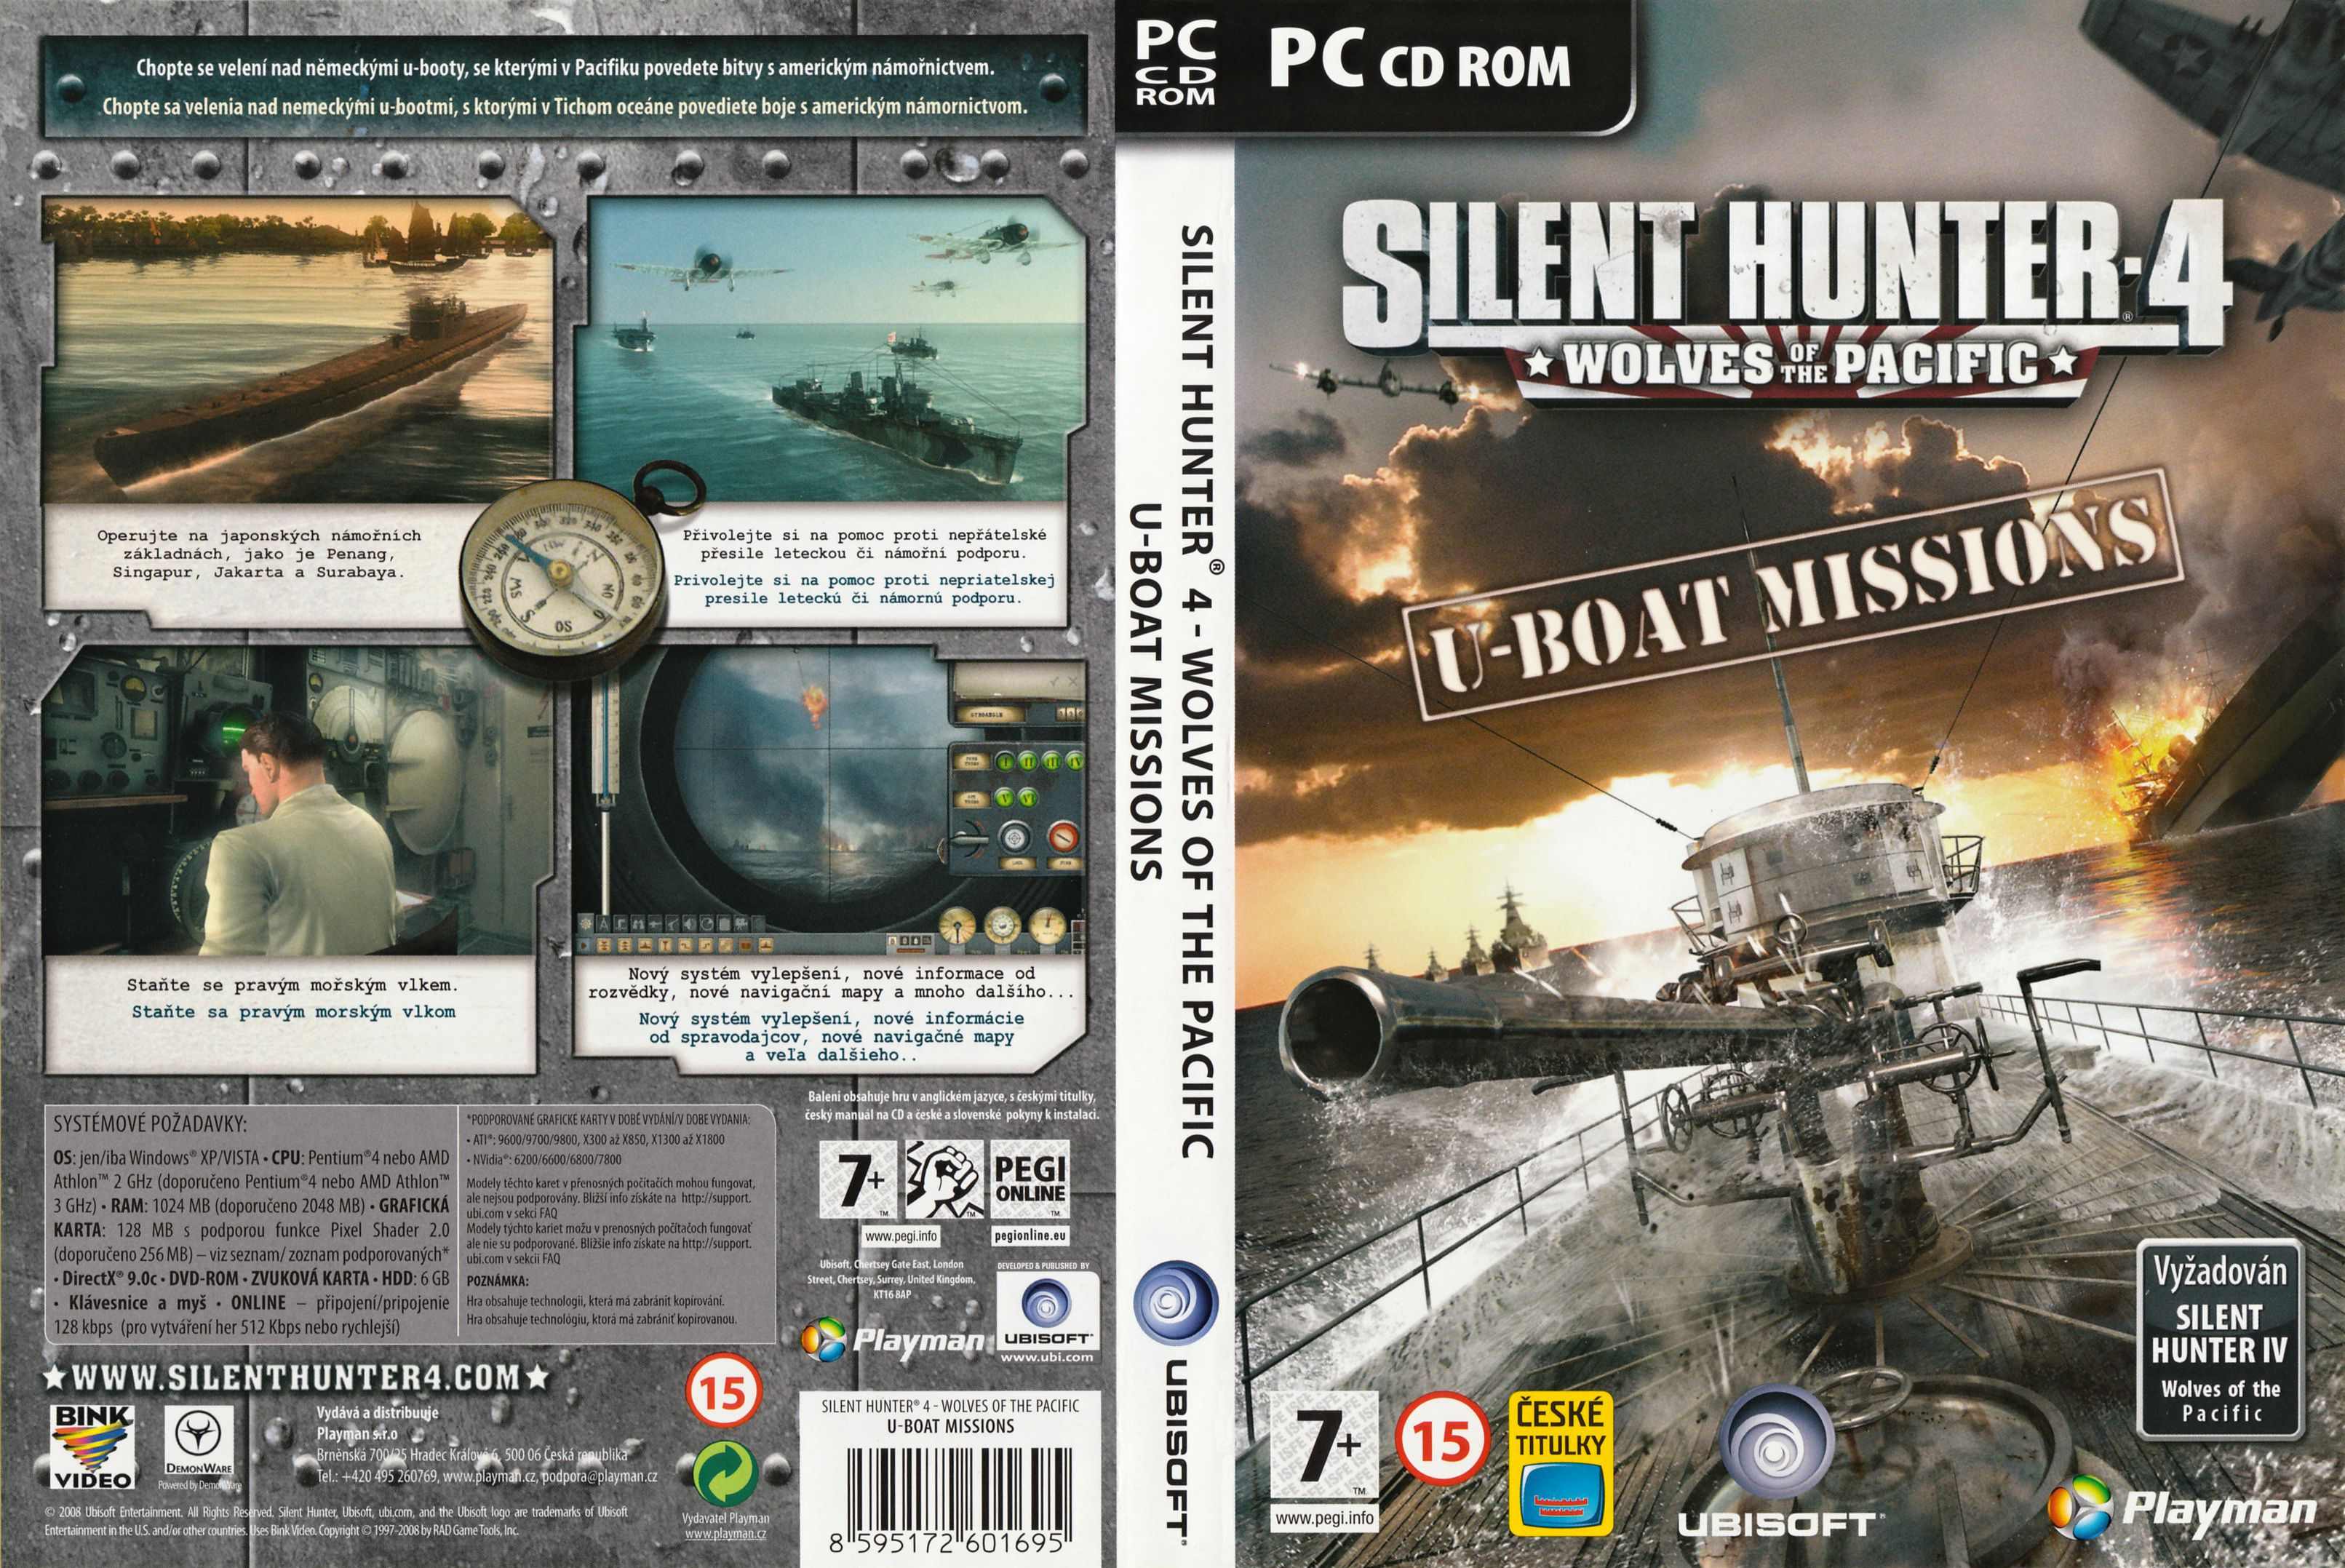 Capa Silent Hunter 4 Wolves Of The Pacific U-Boat Mission PC